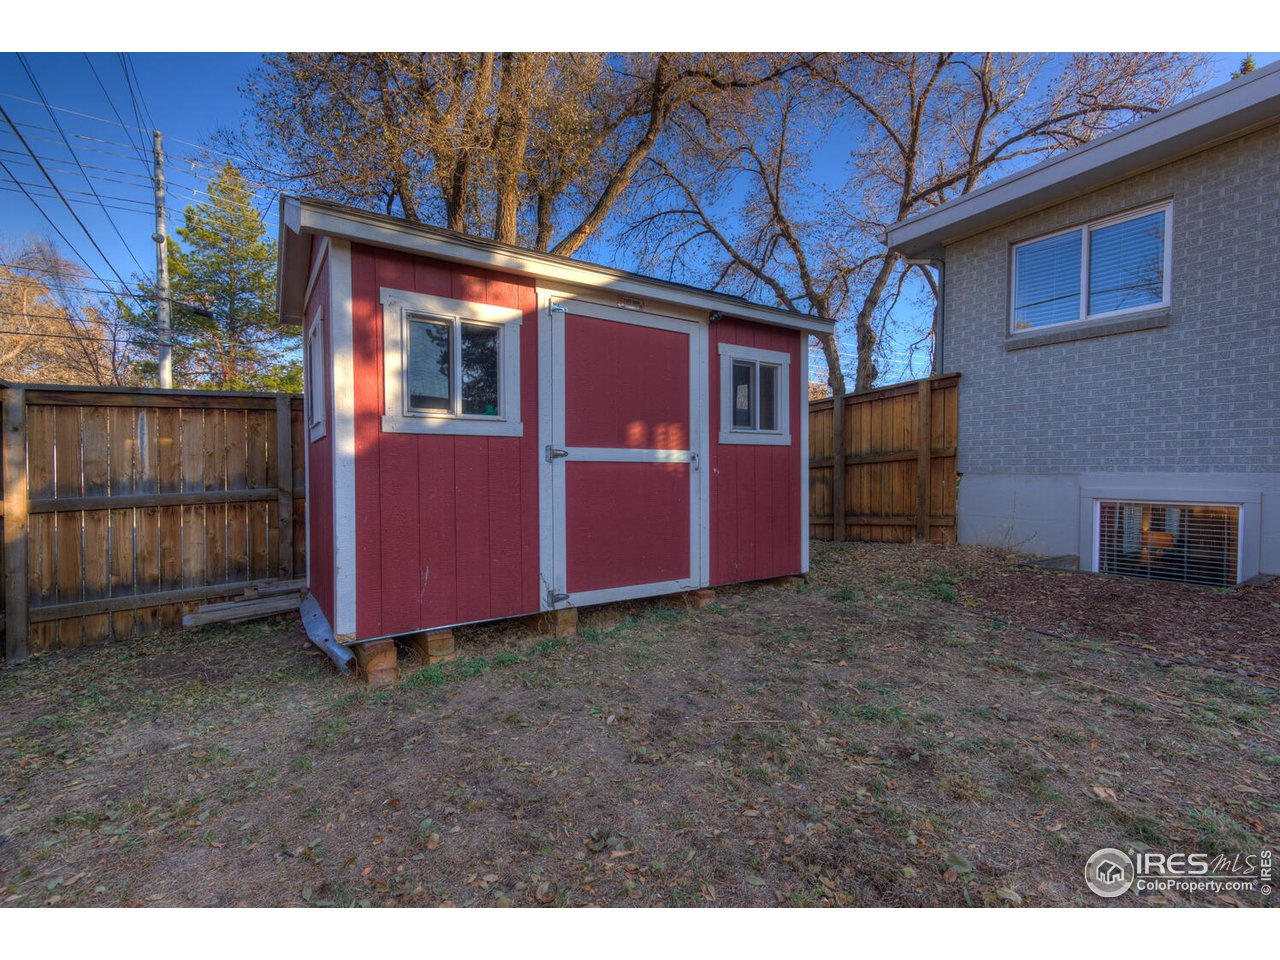 Storage shed in North-side Yard